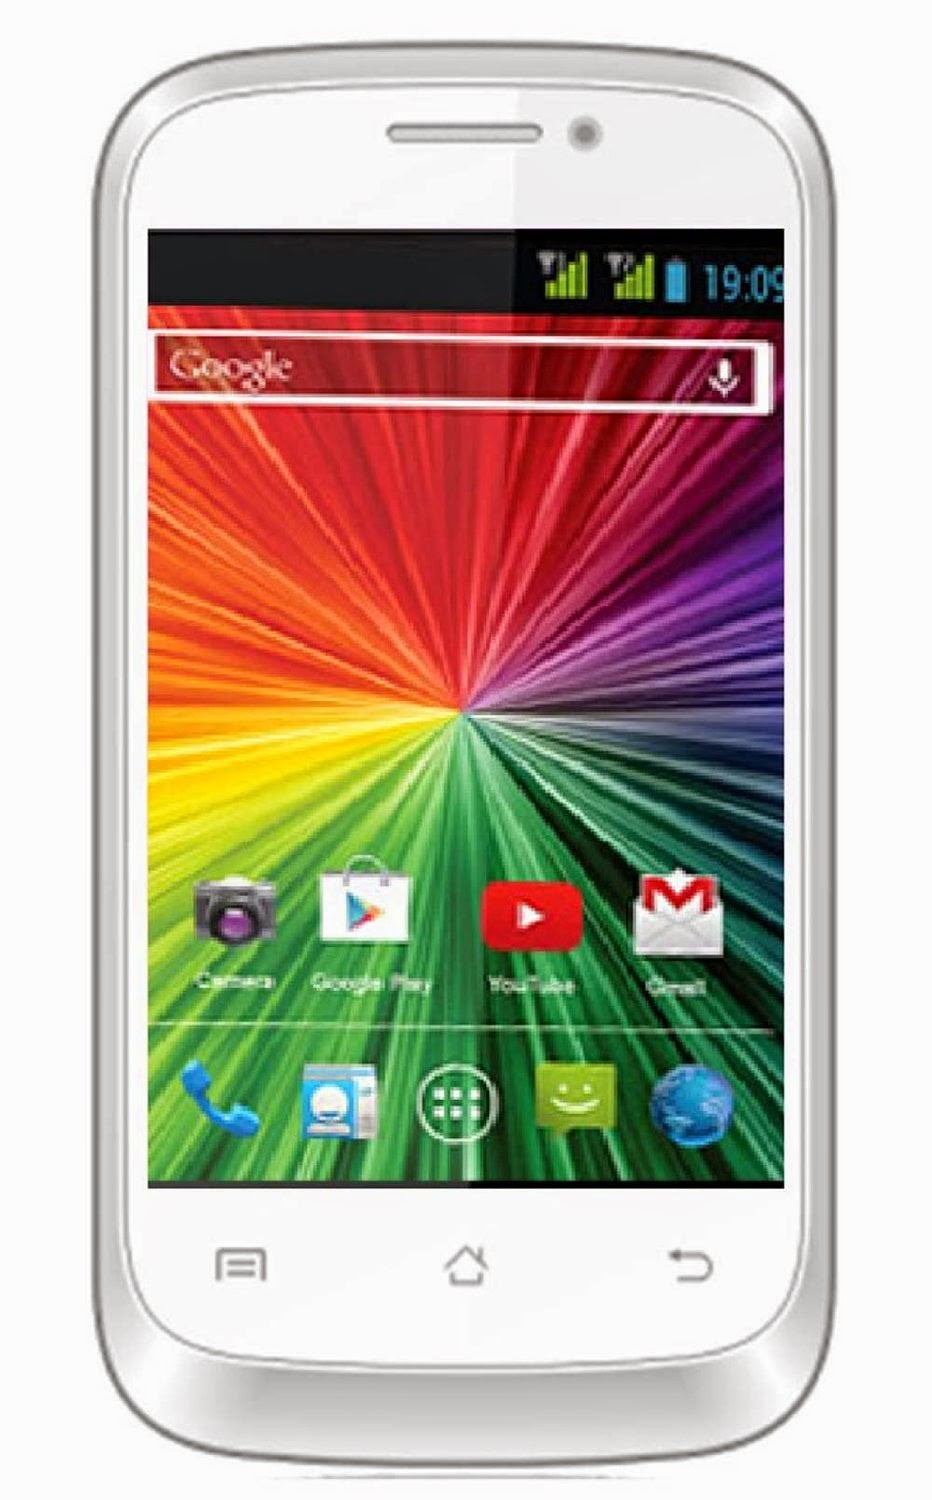 Amazon: Buy Karbonn Duple A1+ at Rs.2850